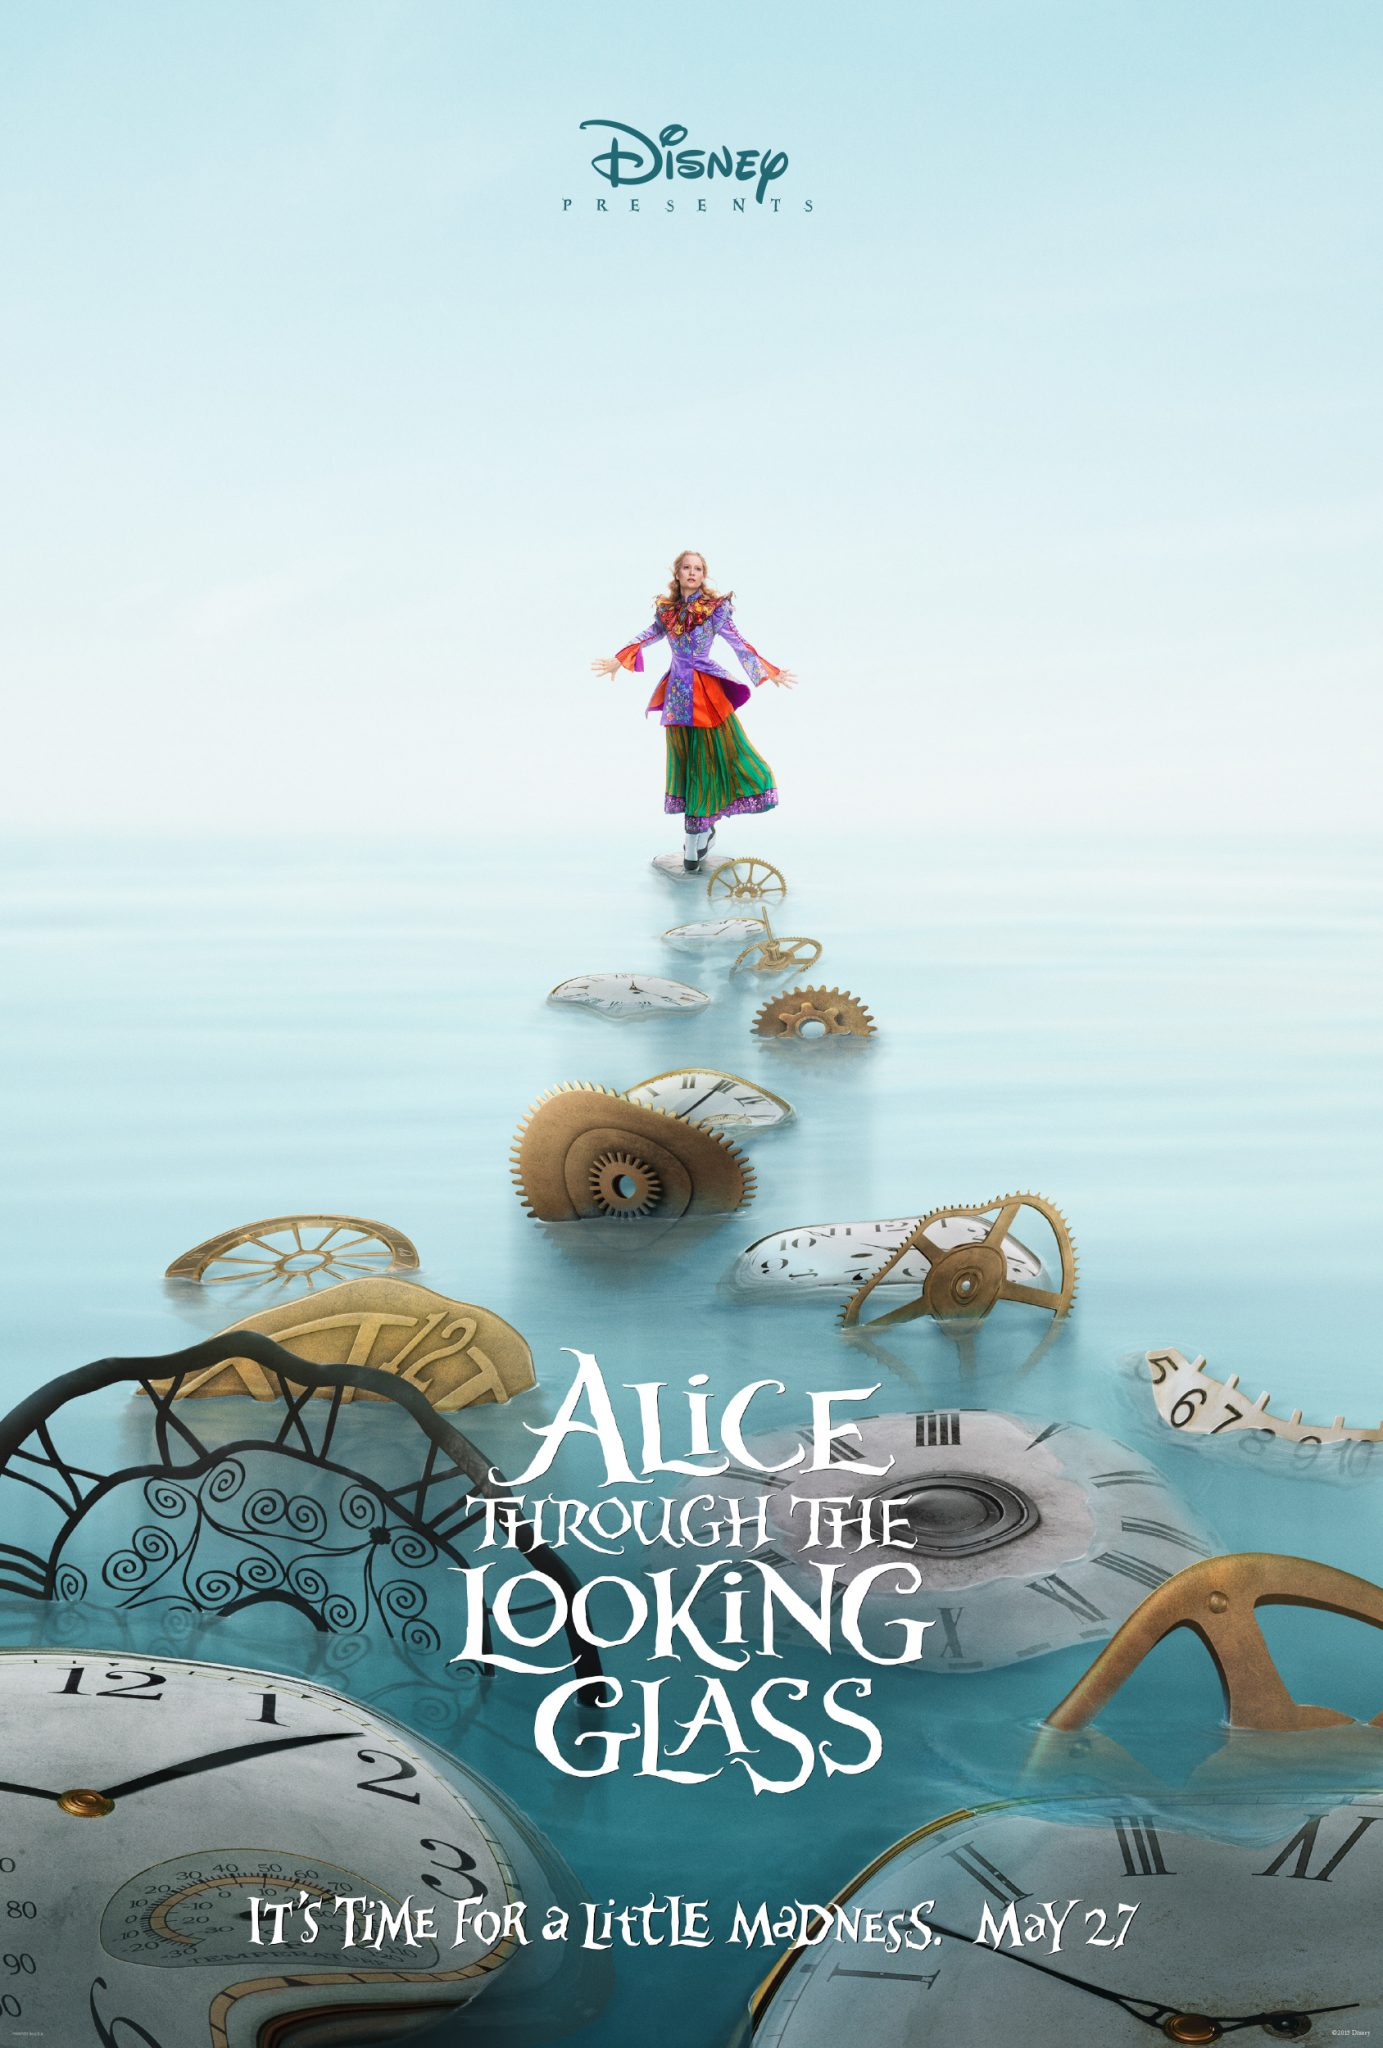 First Look! Disney's 'Alice Through The Looking Glass' Starring Johnny Depp